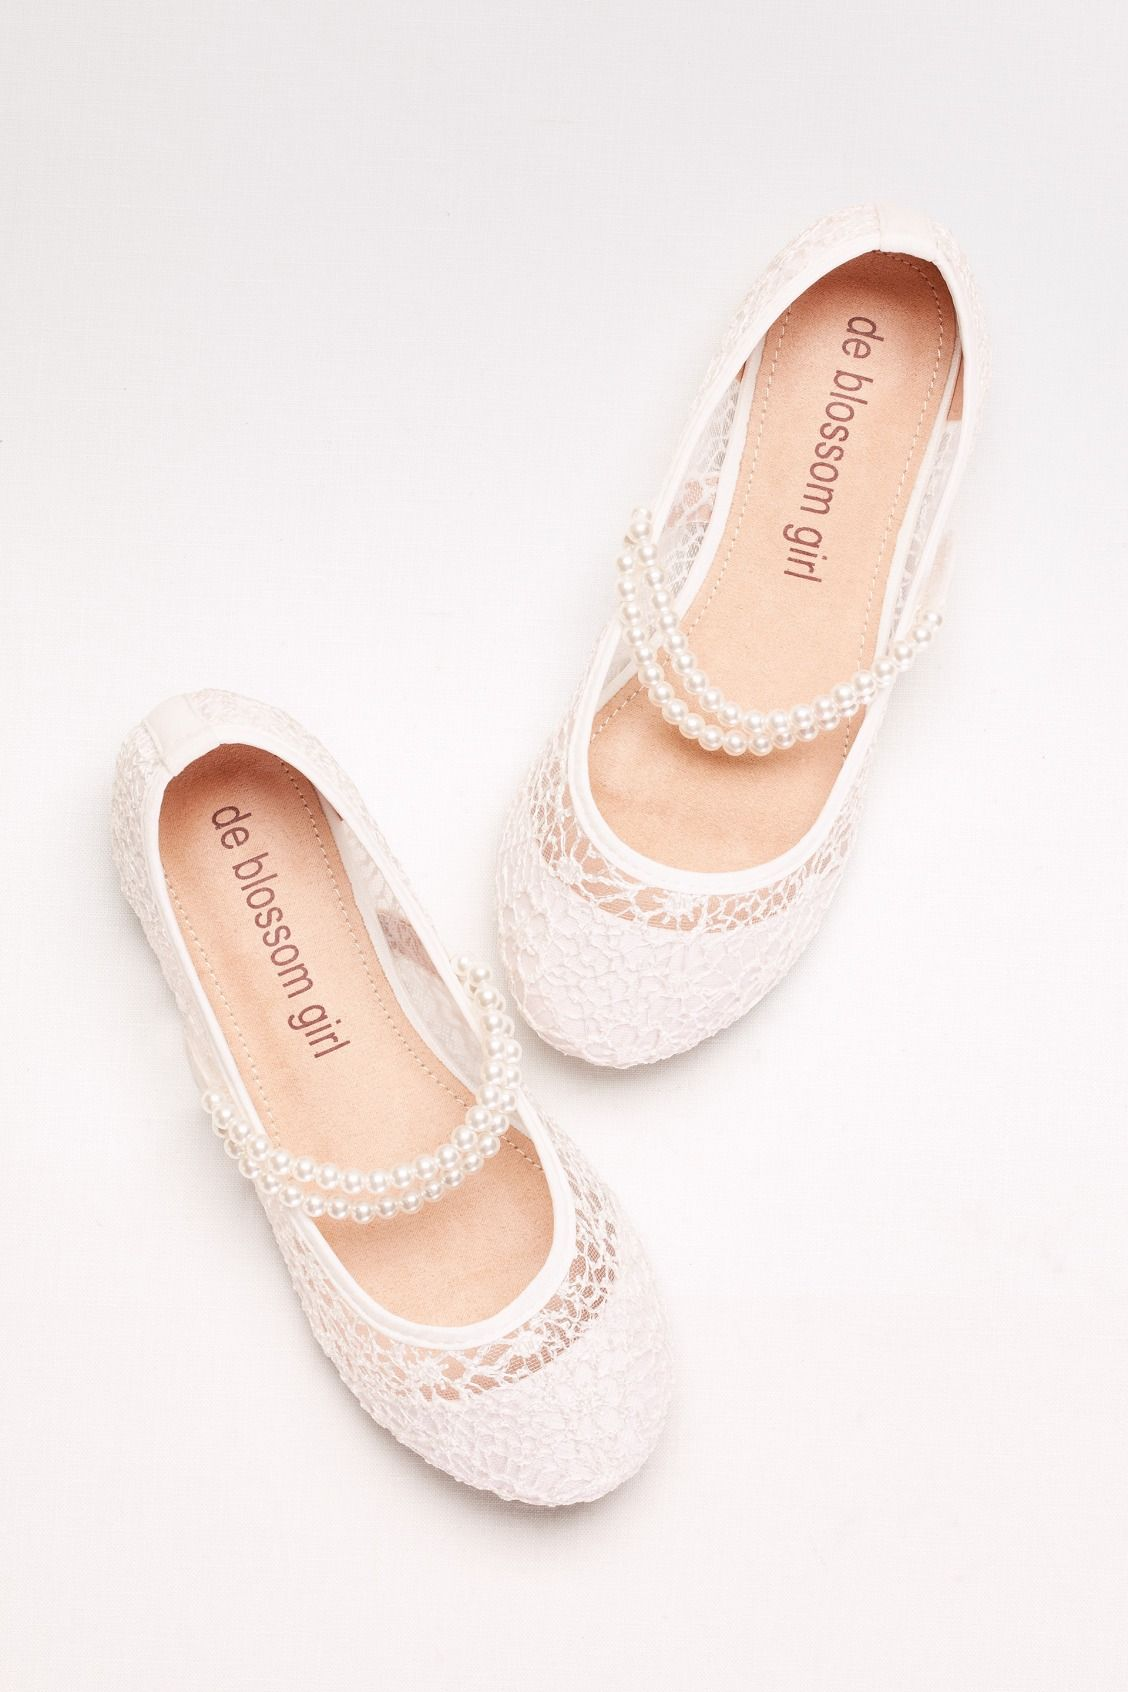 eb2929e57e65 Girls Lace Mary Janes with Pearl Strap by Blossom Girl available at David s  Bridal